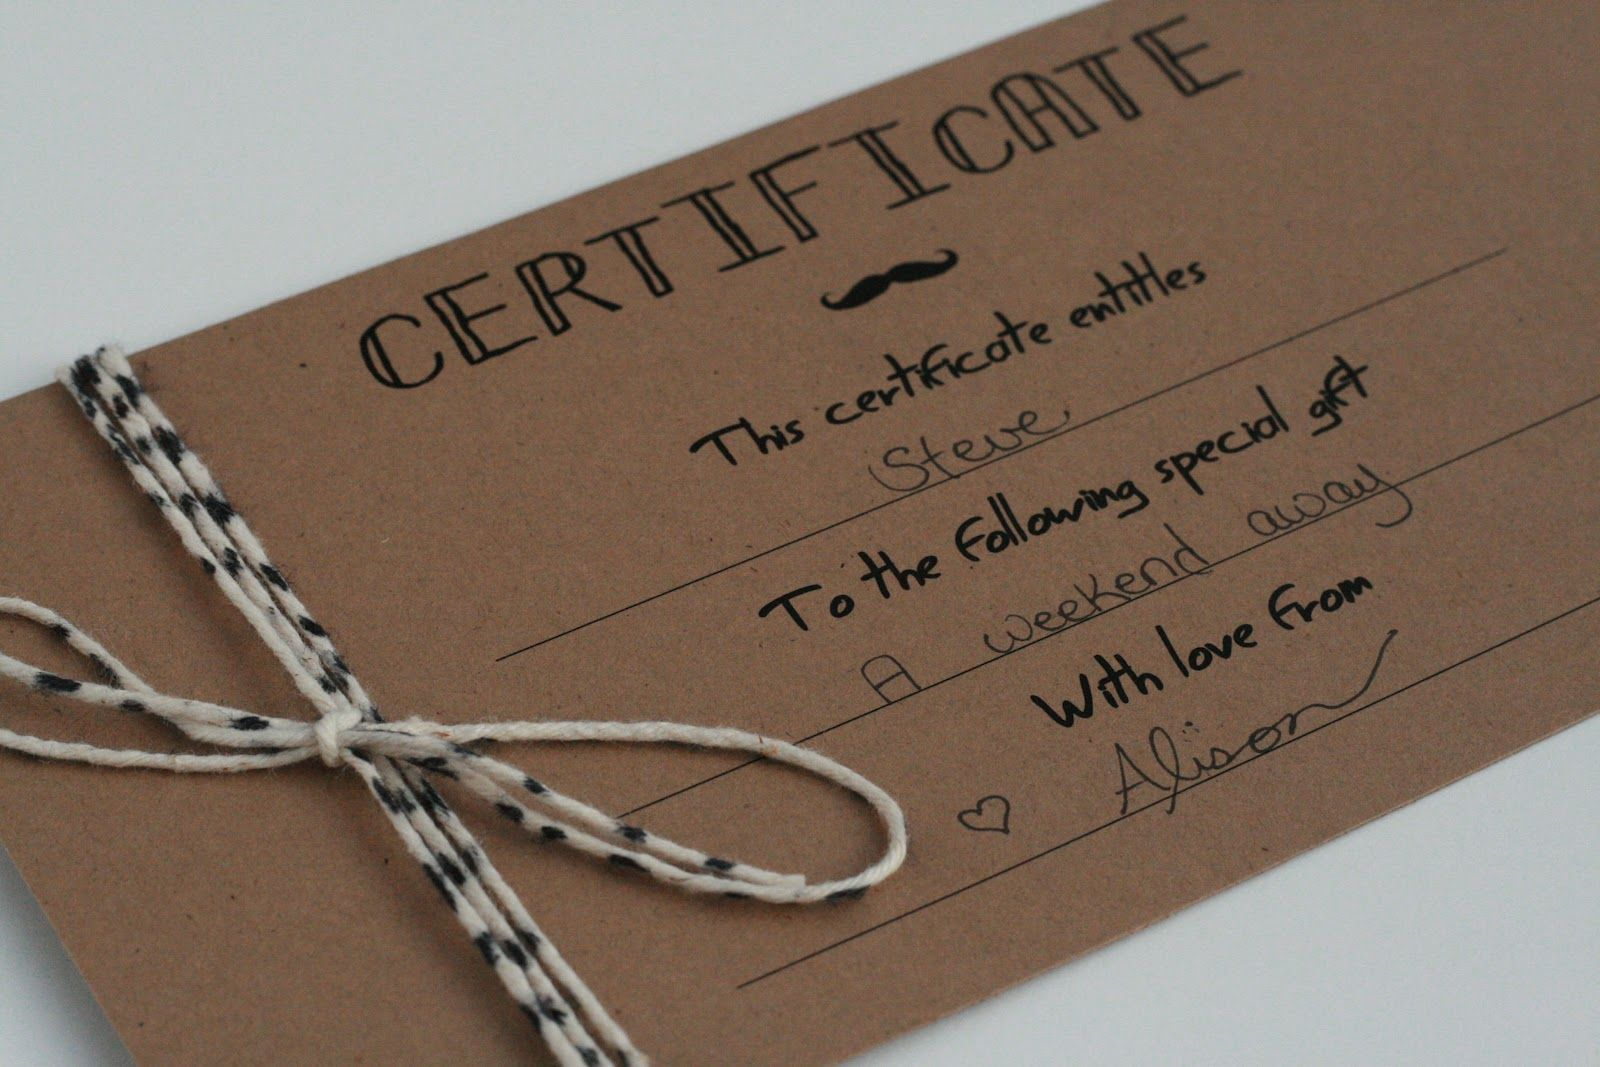 Image of homemade gift certificate.